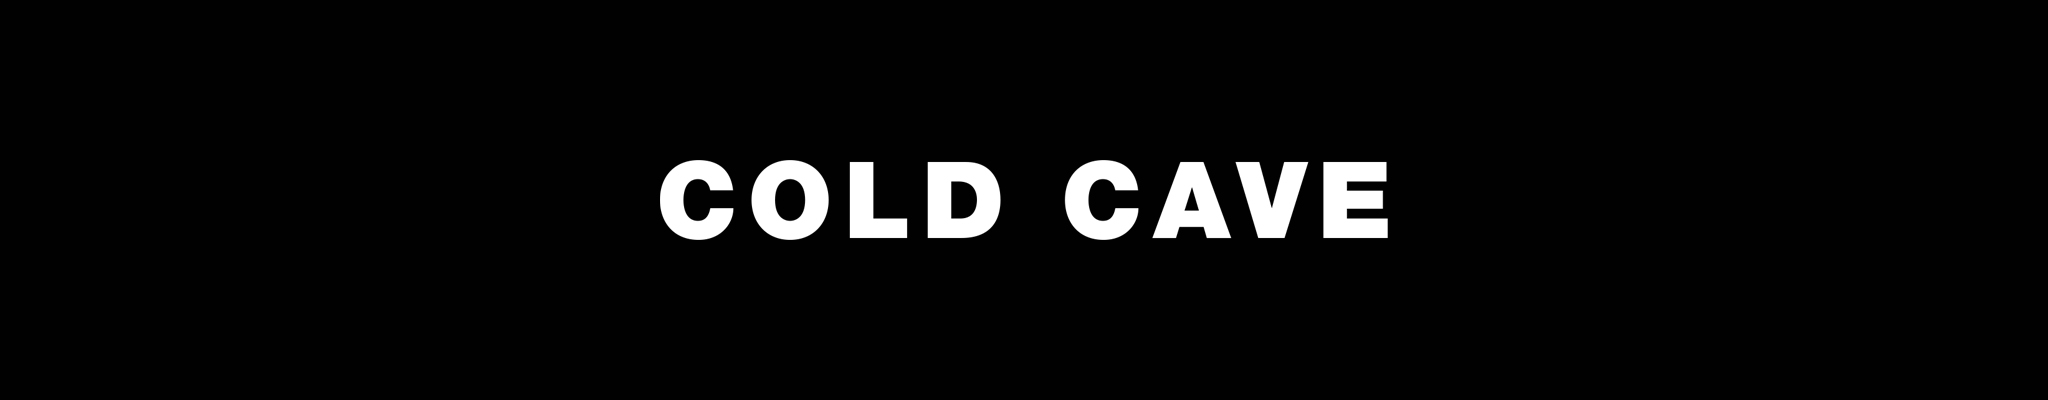 Cold Cave Official Eu Uk Store Evil Greed